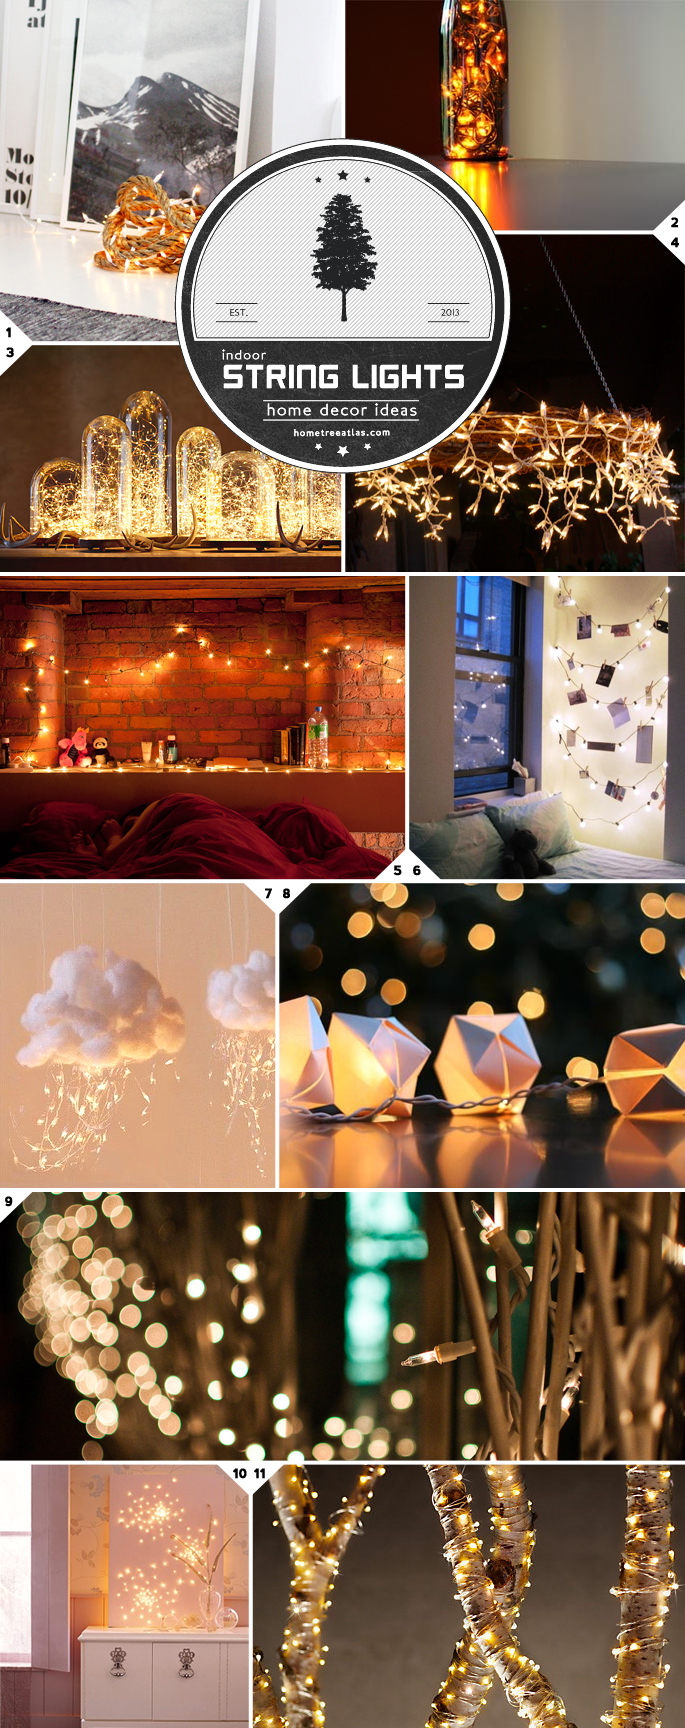 string lighting indoor. Home Decor Ideas: Beautiful Ways To Use String Lights Indoors Lighting Indoor E